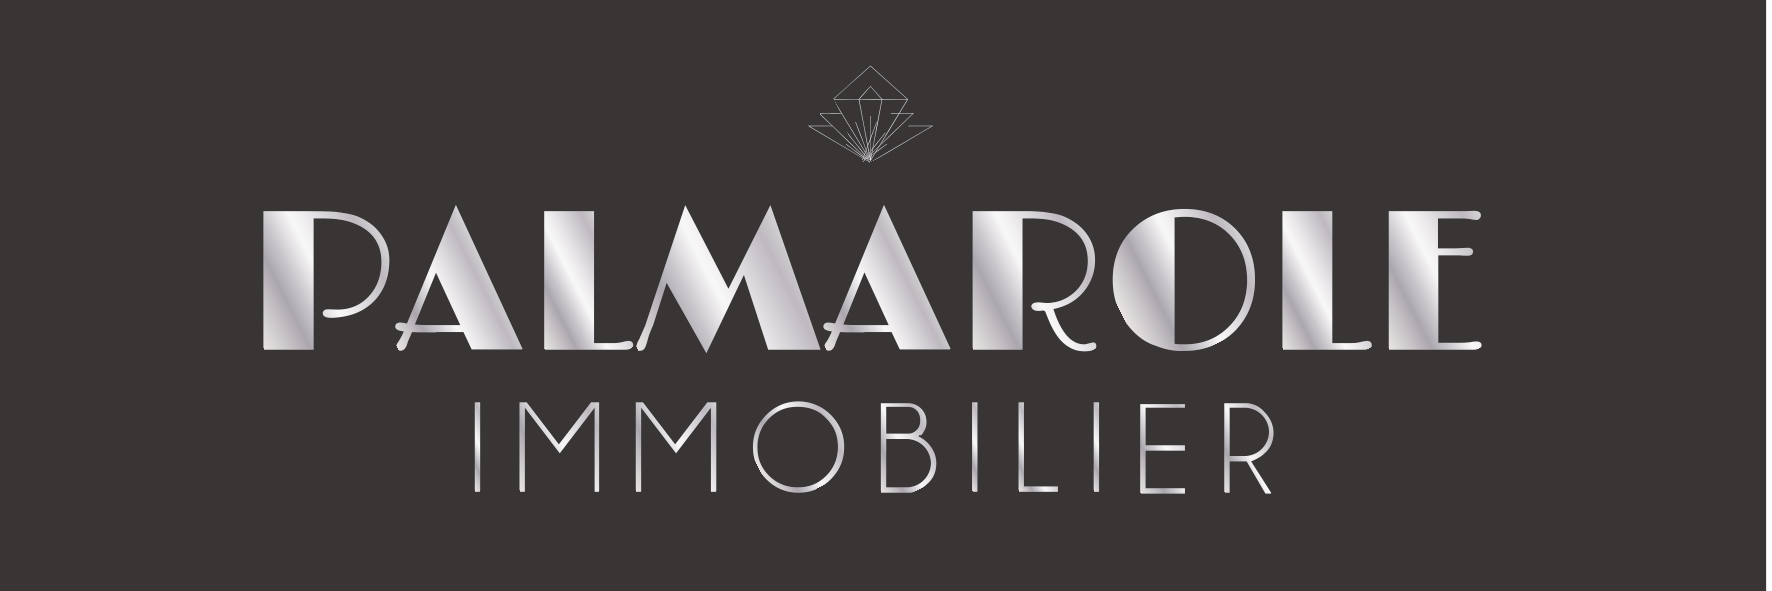 http://usepmm.fr/wp-content/uploads/2021/03/Palmarole-immobilier-gris_page-0001.jpg